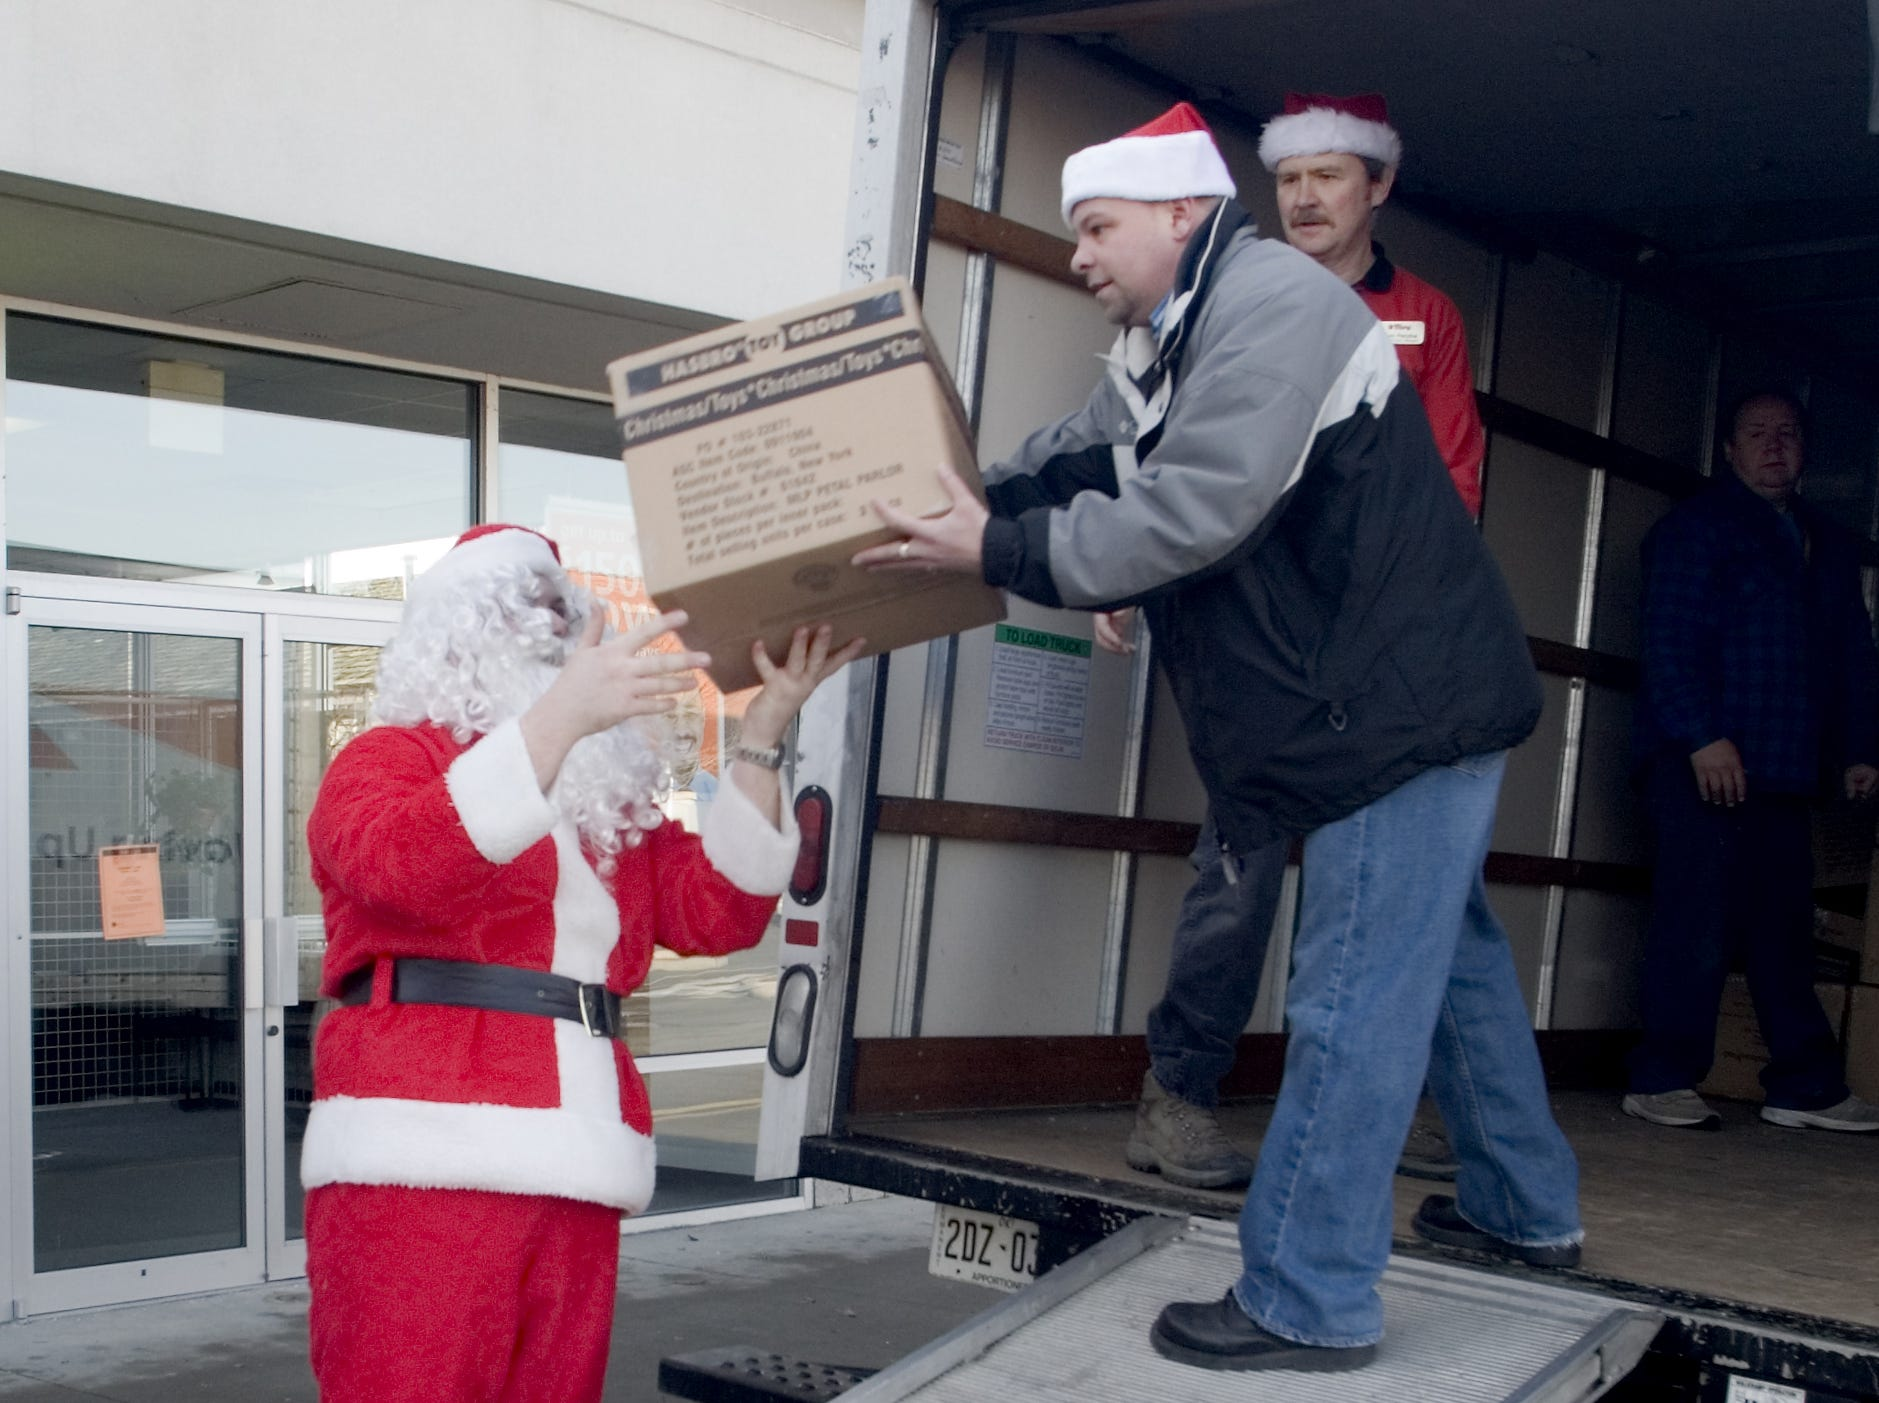 In 2006, Tops boosts Salvation Army Tops Friendly Markets employees Jeremy Stone, left, dressed as Santa Claus, Jim Butts, center, and Tom Petzke load a truck Thursday morning with $5,000 worth of toys donated to the Salvation Army. The toys, along with a $1,100 donation, were paid for by donations from store customers in Elmira and Big Flats.